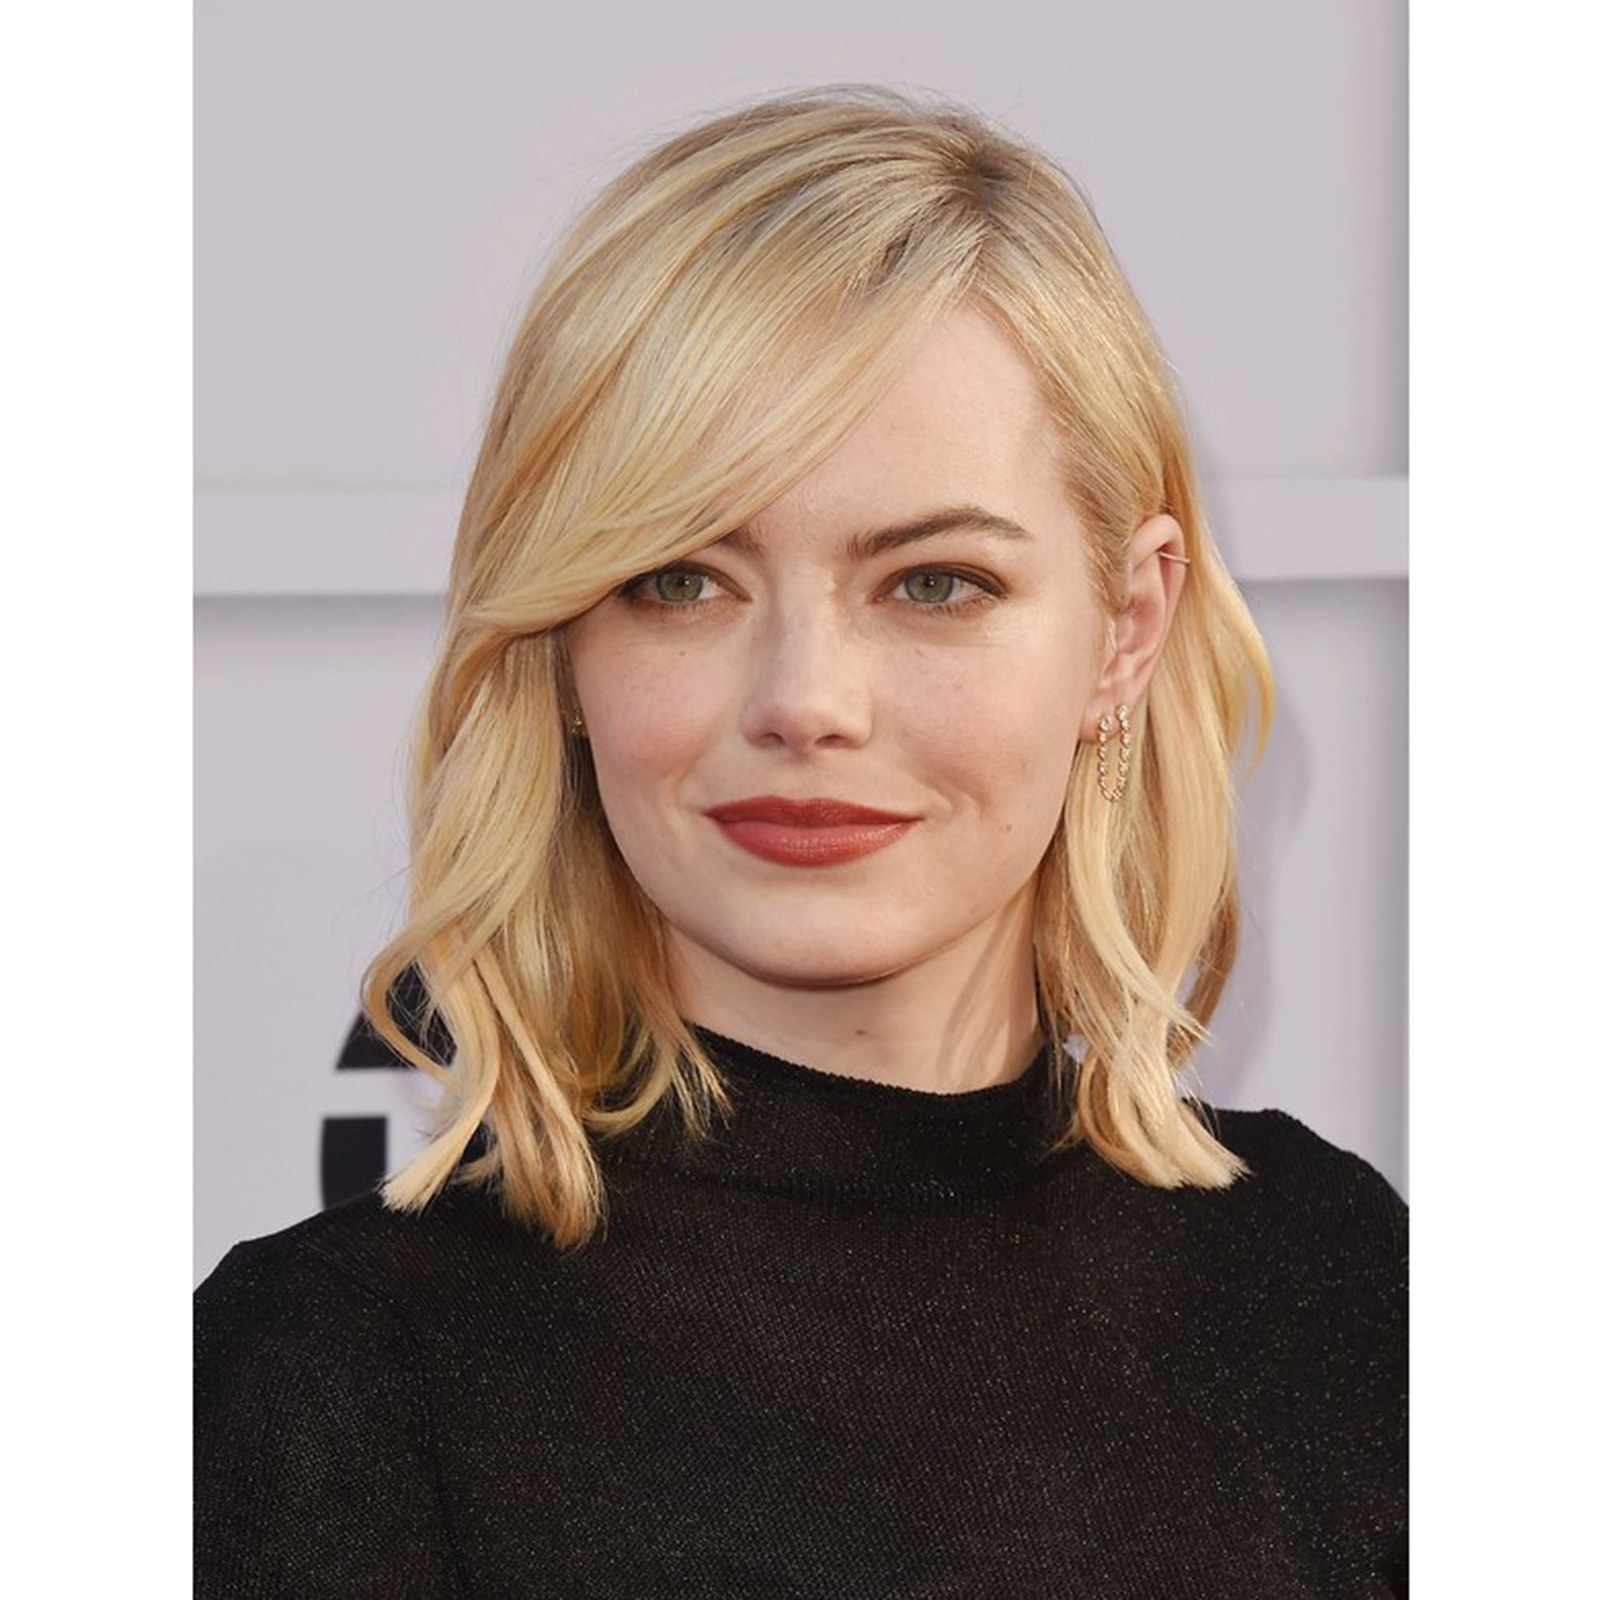 The 9 Best Haircuts For Round Faces, According To Stylists – Allure With Low Maintenance Short Haircuts For Round Faces (View 11 of 25)